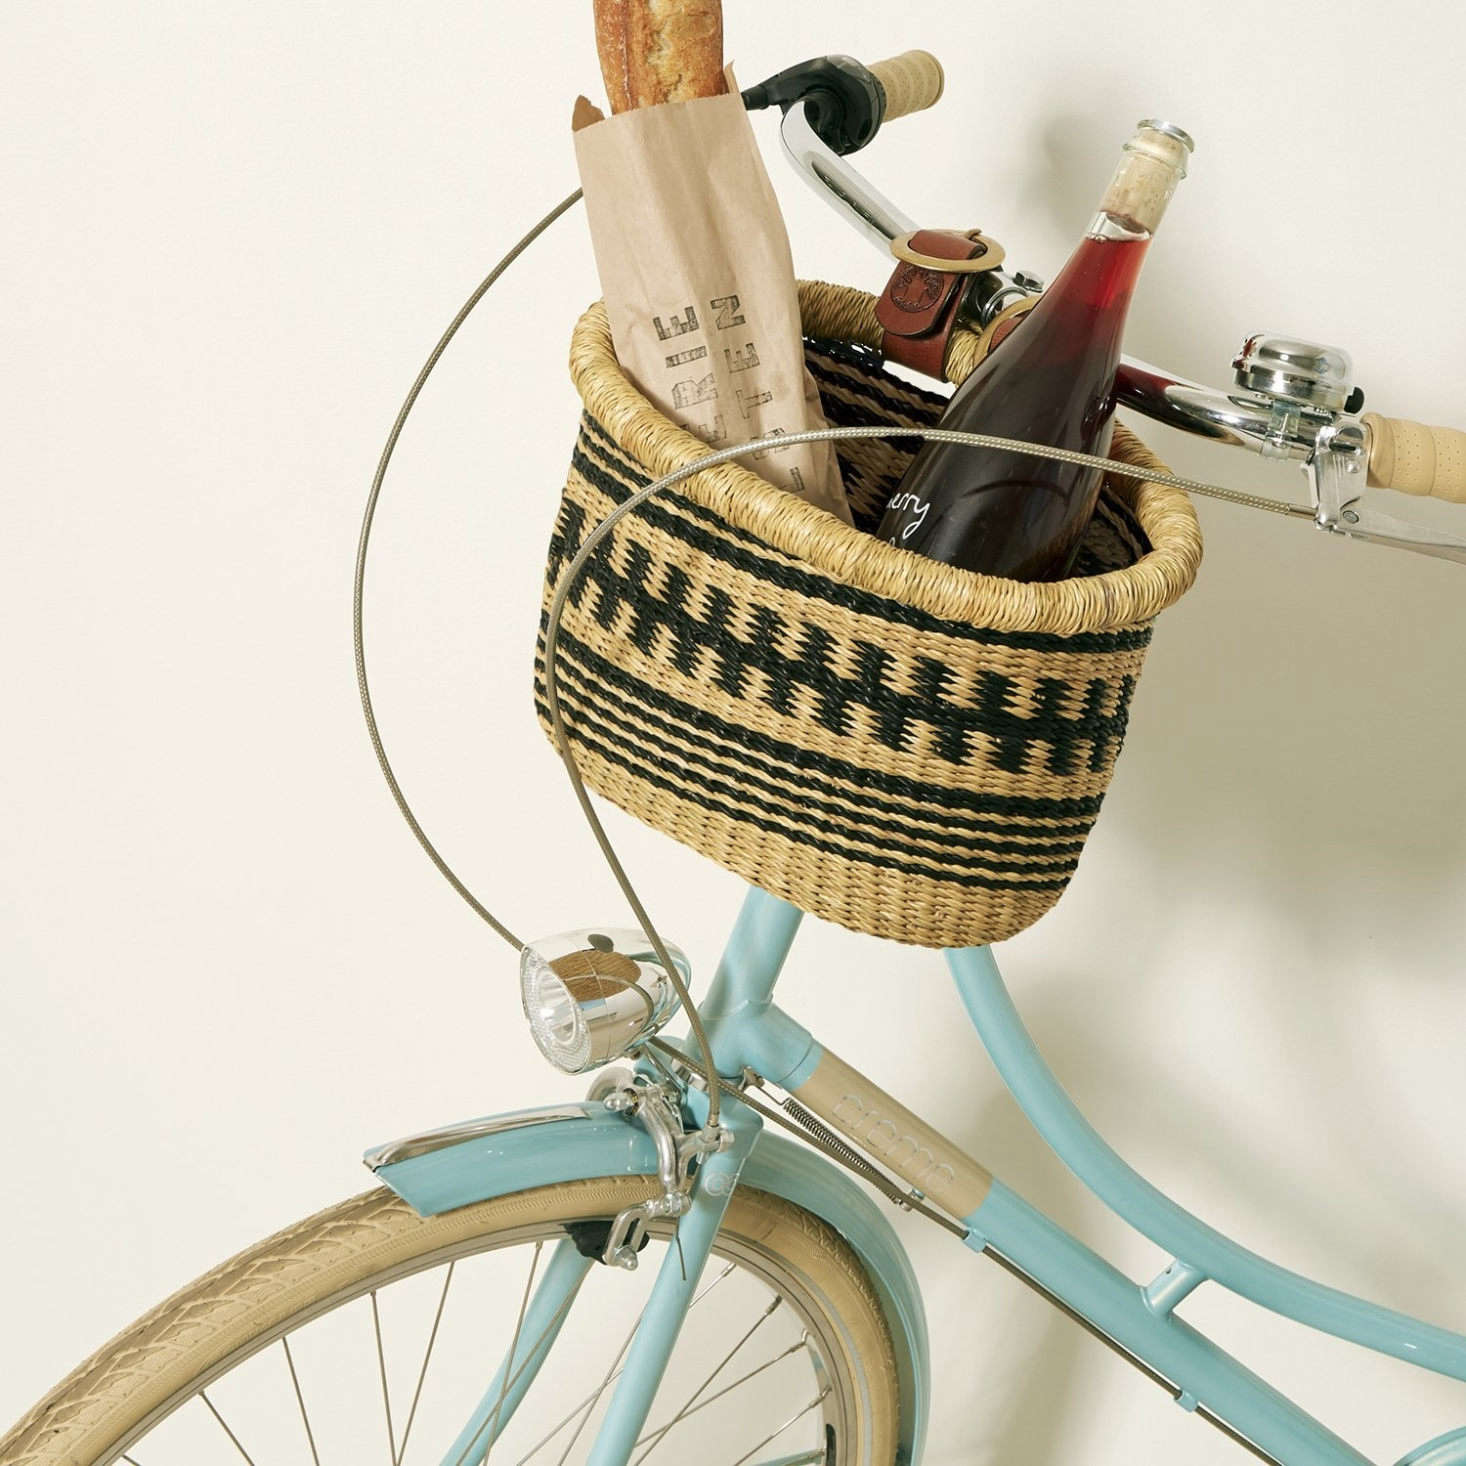 The handwoven, fair-trade Medium Bicycle Basket ($80), also by Baba Tree, straps sturdily to the front of a bike for carrying farmer's market hauls, picnics, and other summer essentials.